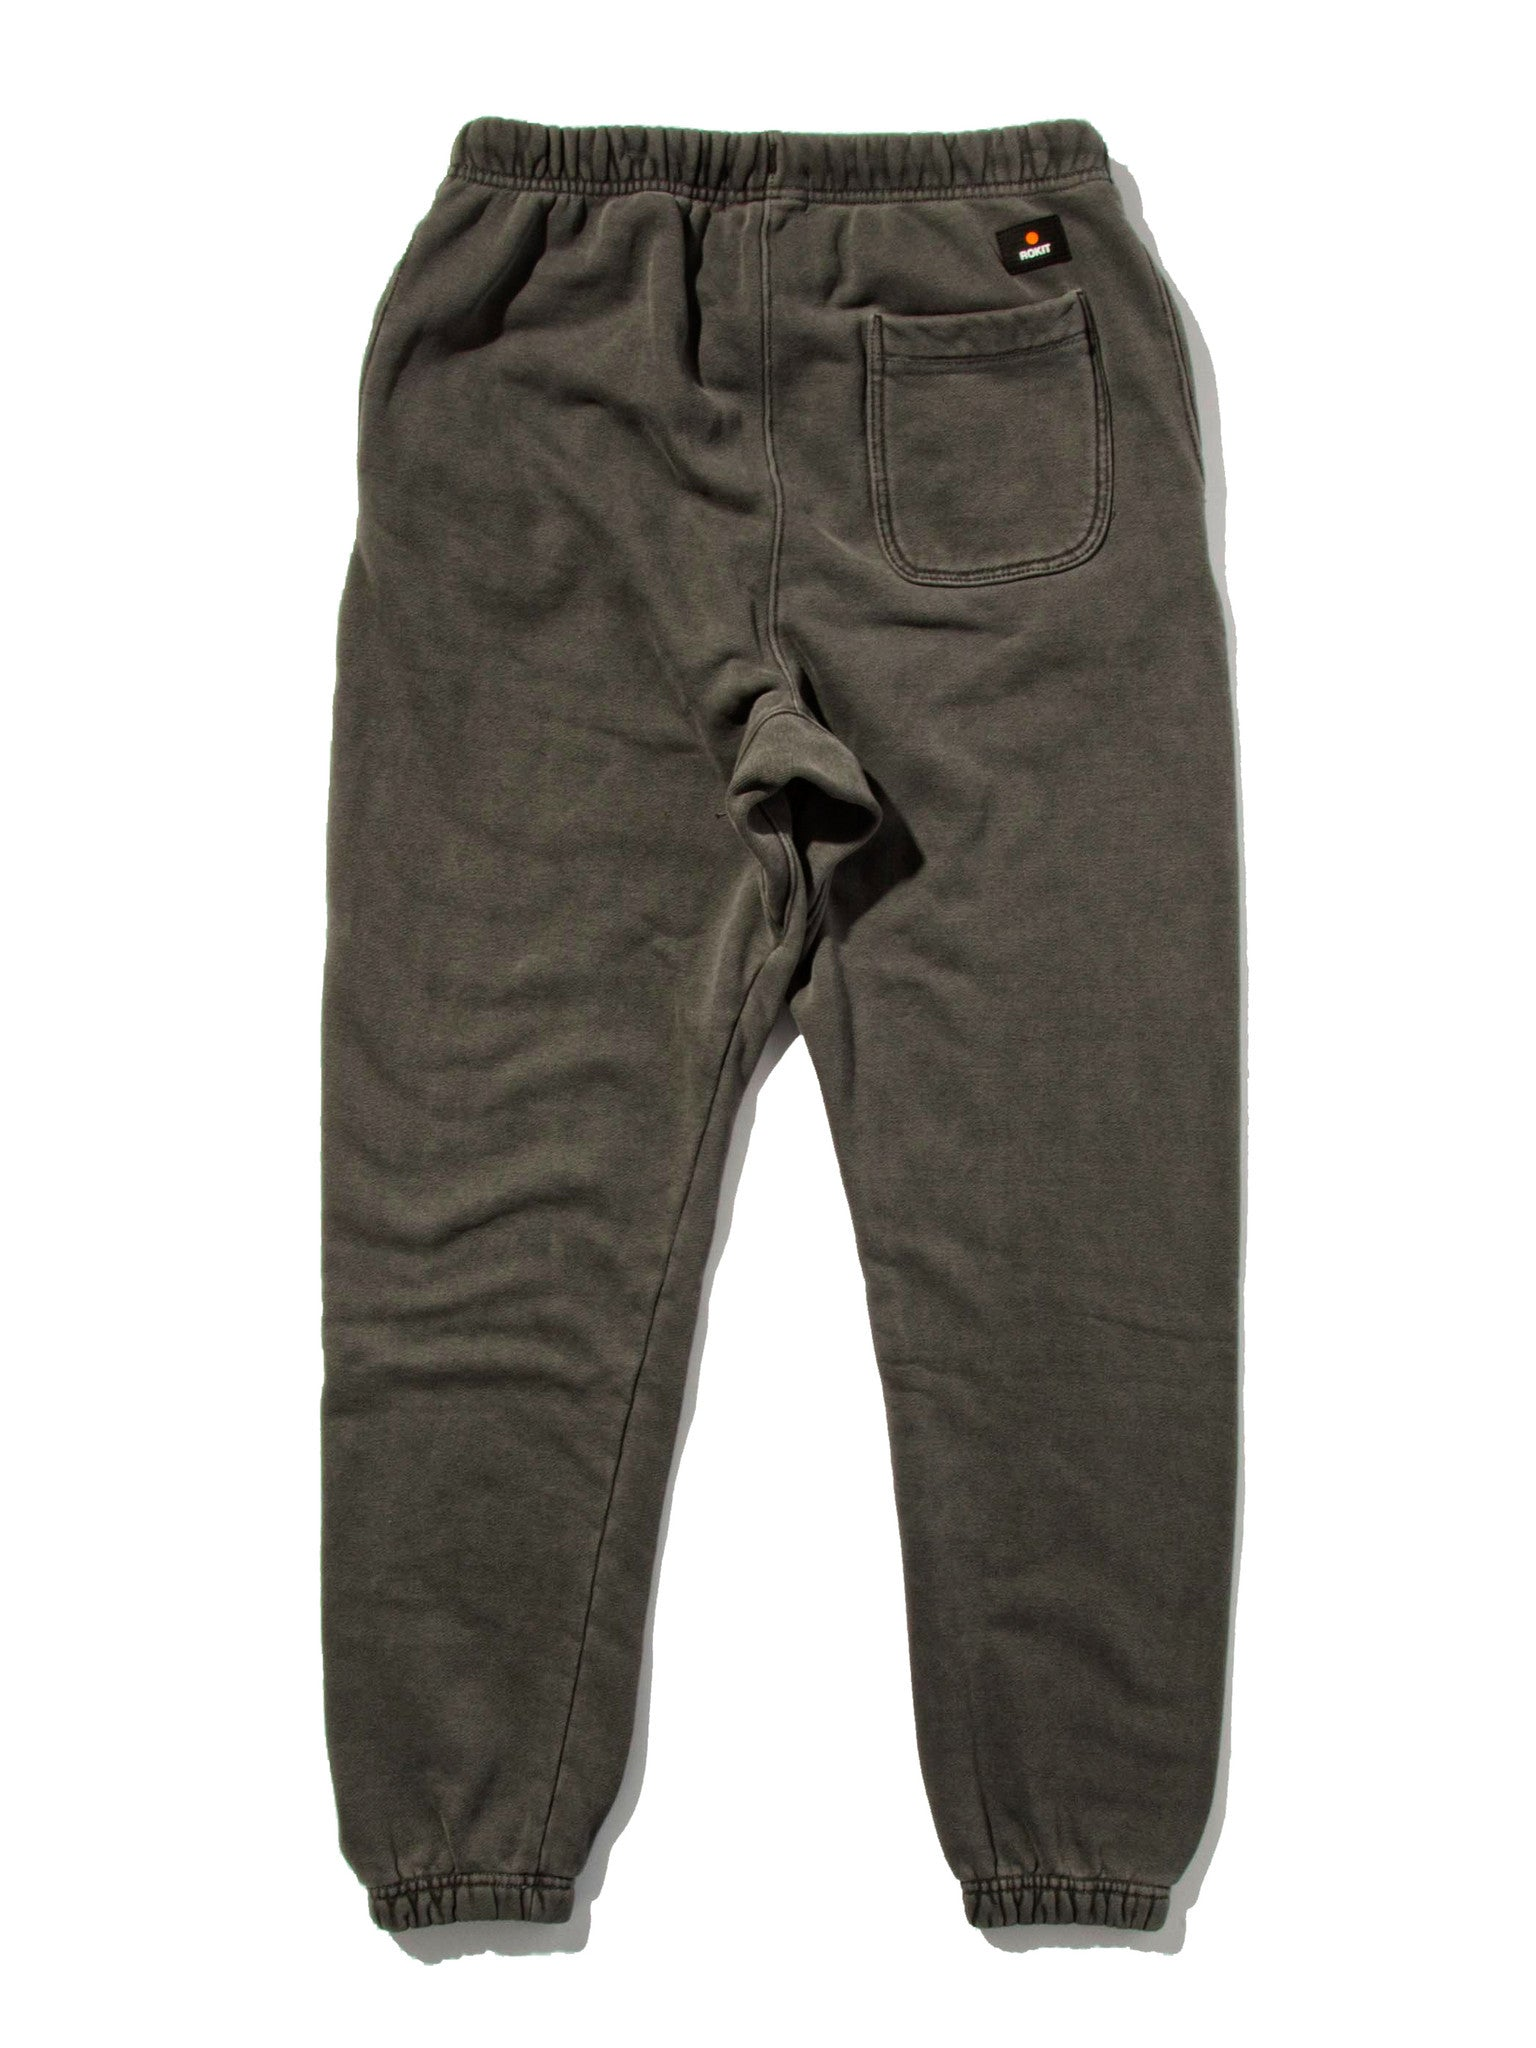 Orange Rumble Sweatpant 8